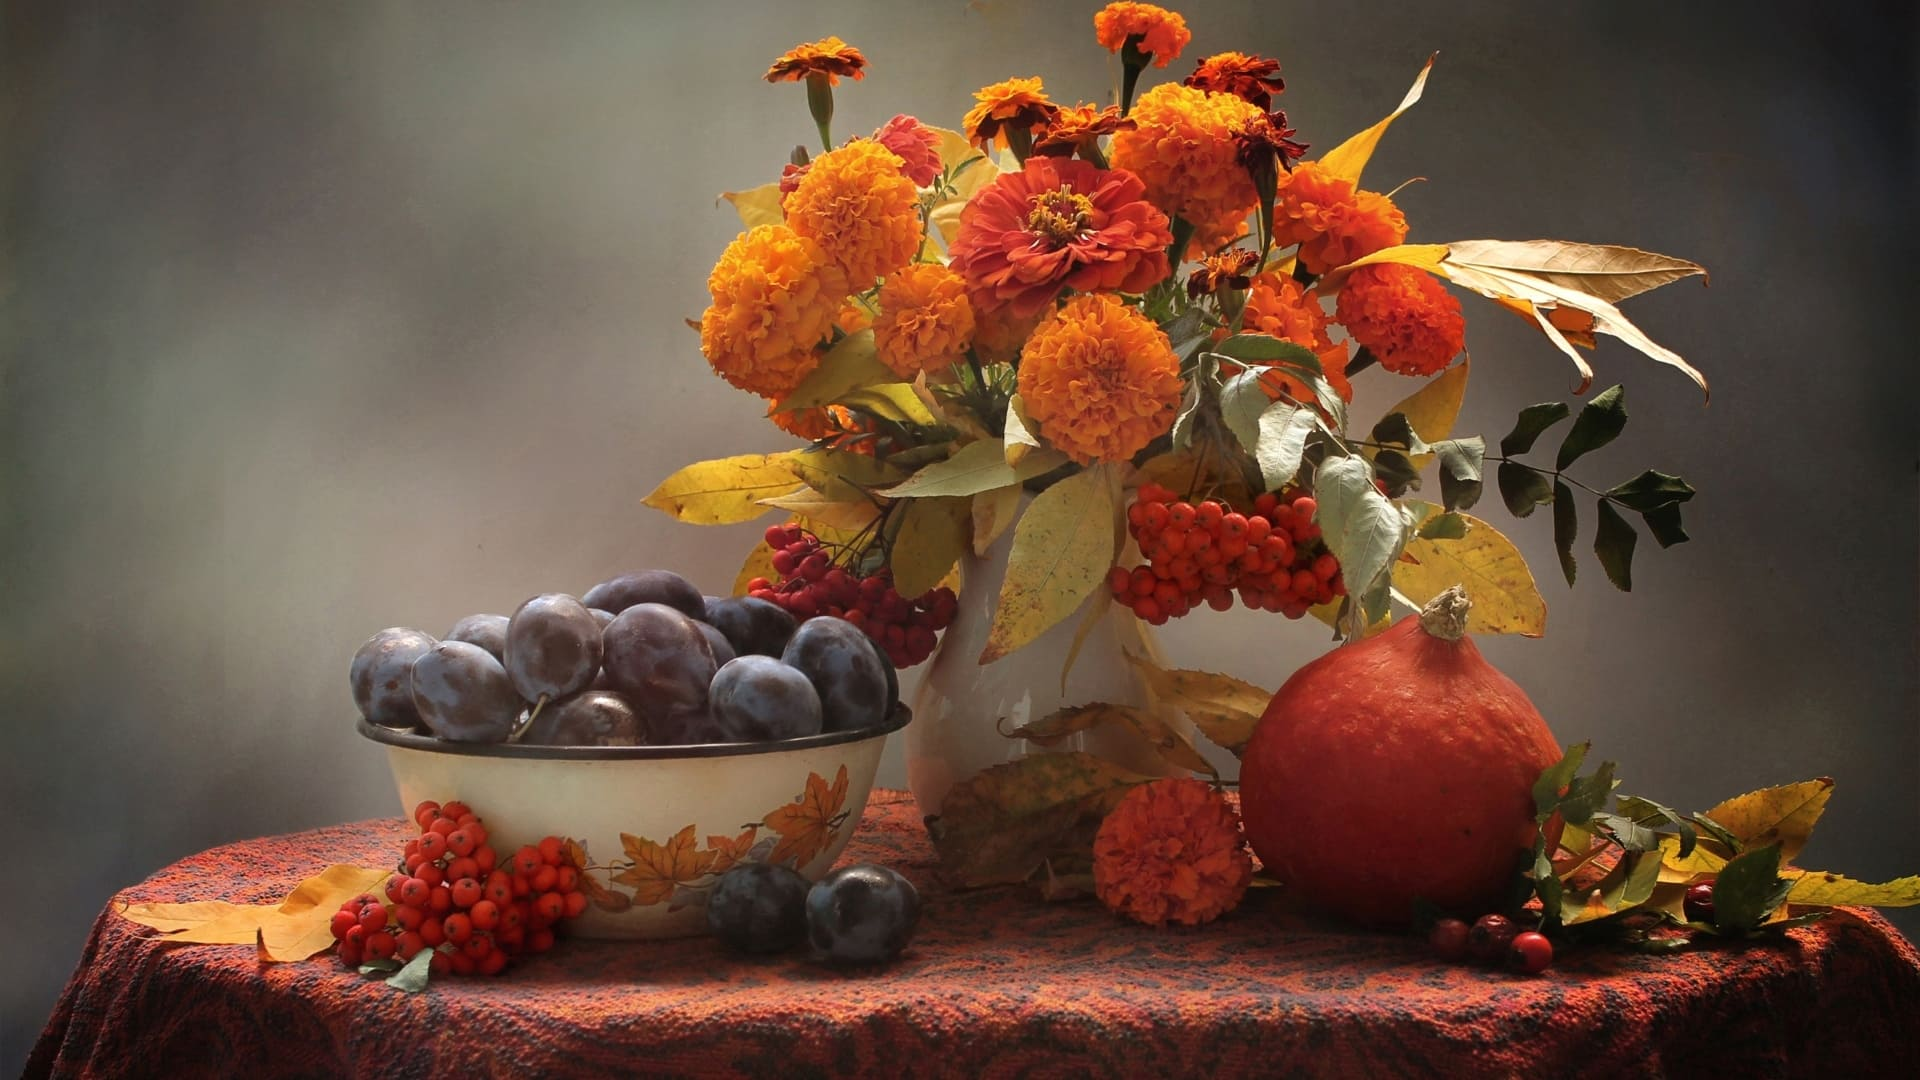 Images of fall flowers